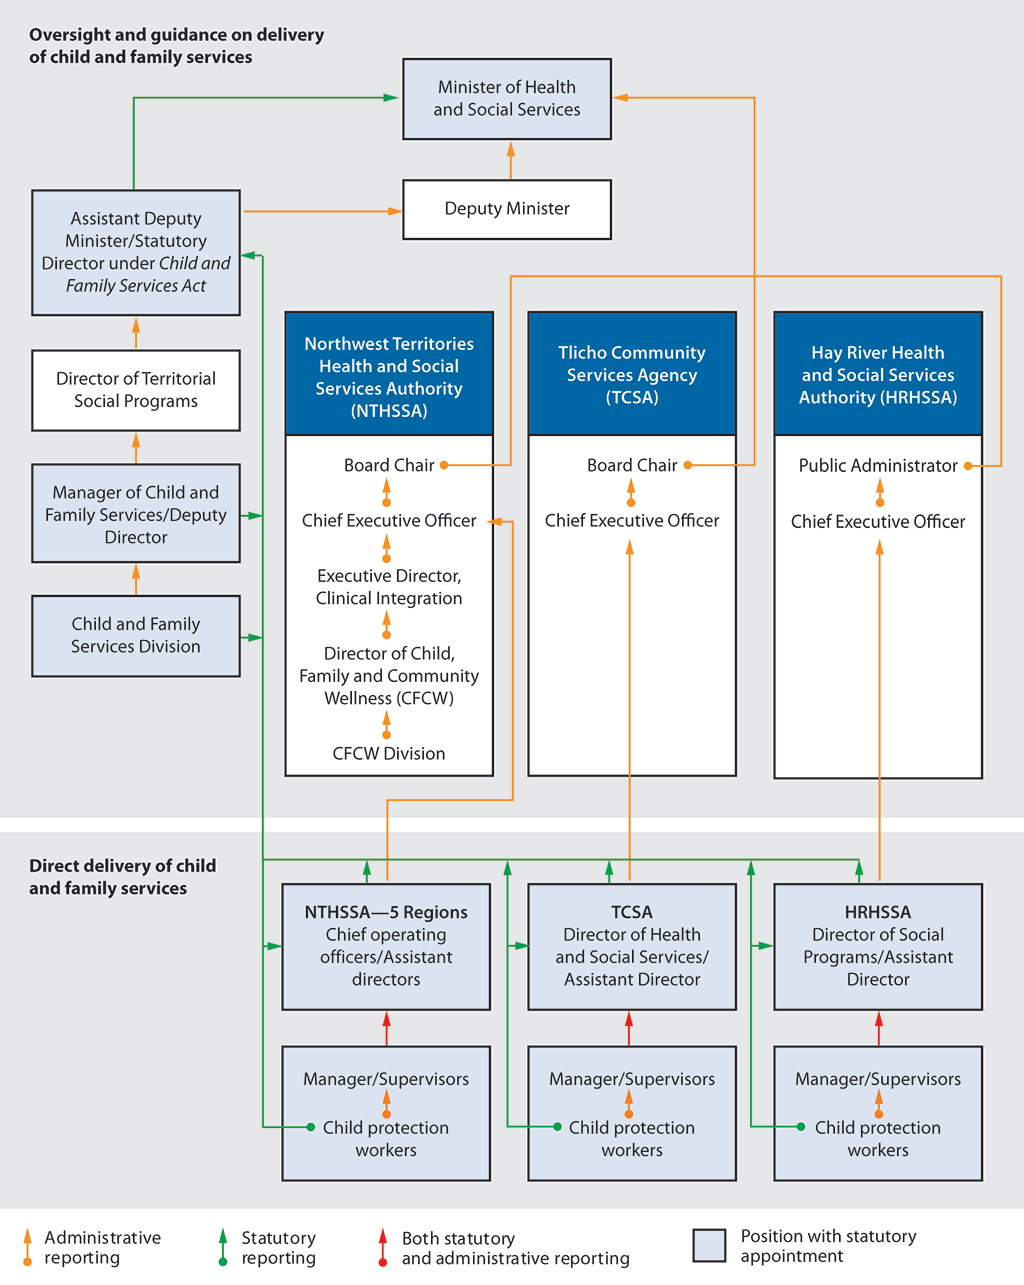 The organizational chart shows the accountability and organizational structure for child and family services in the Northwest Territories